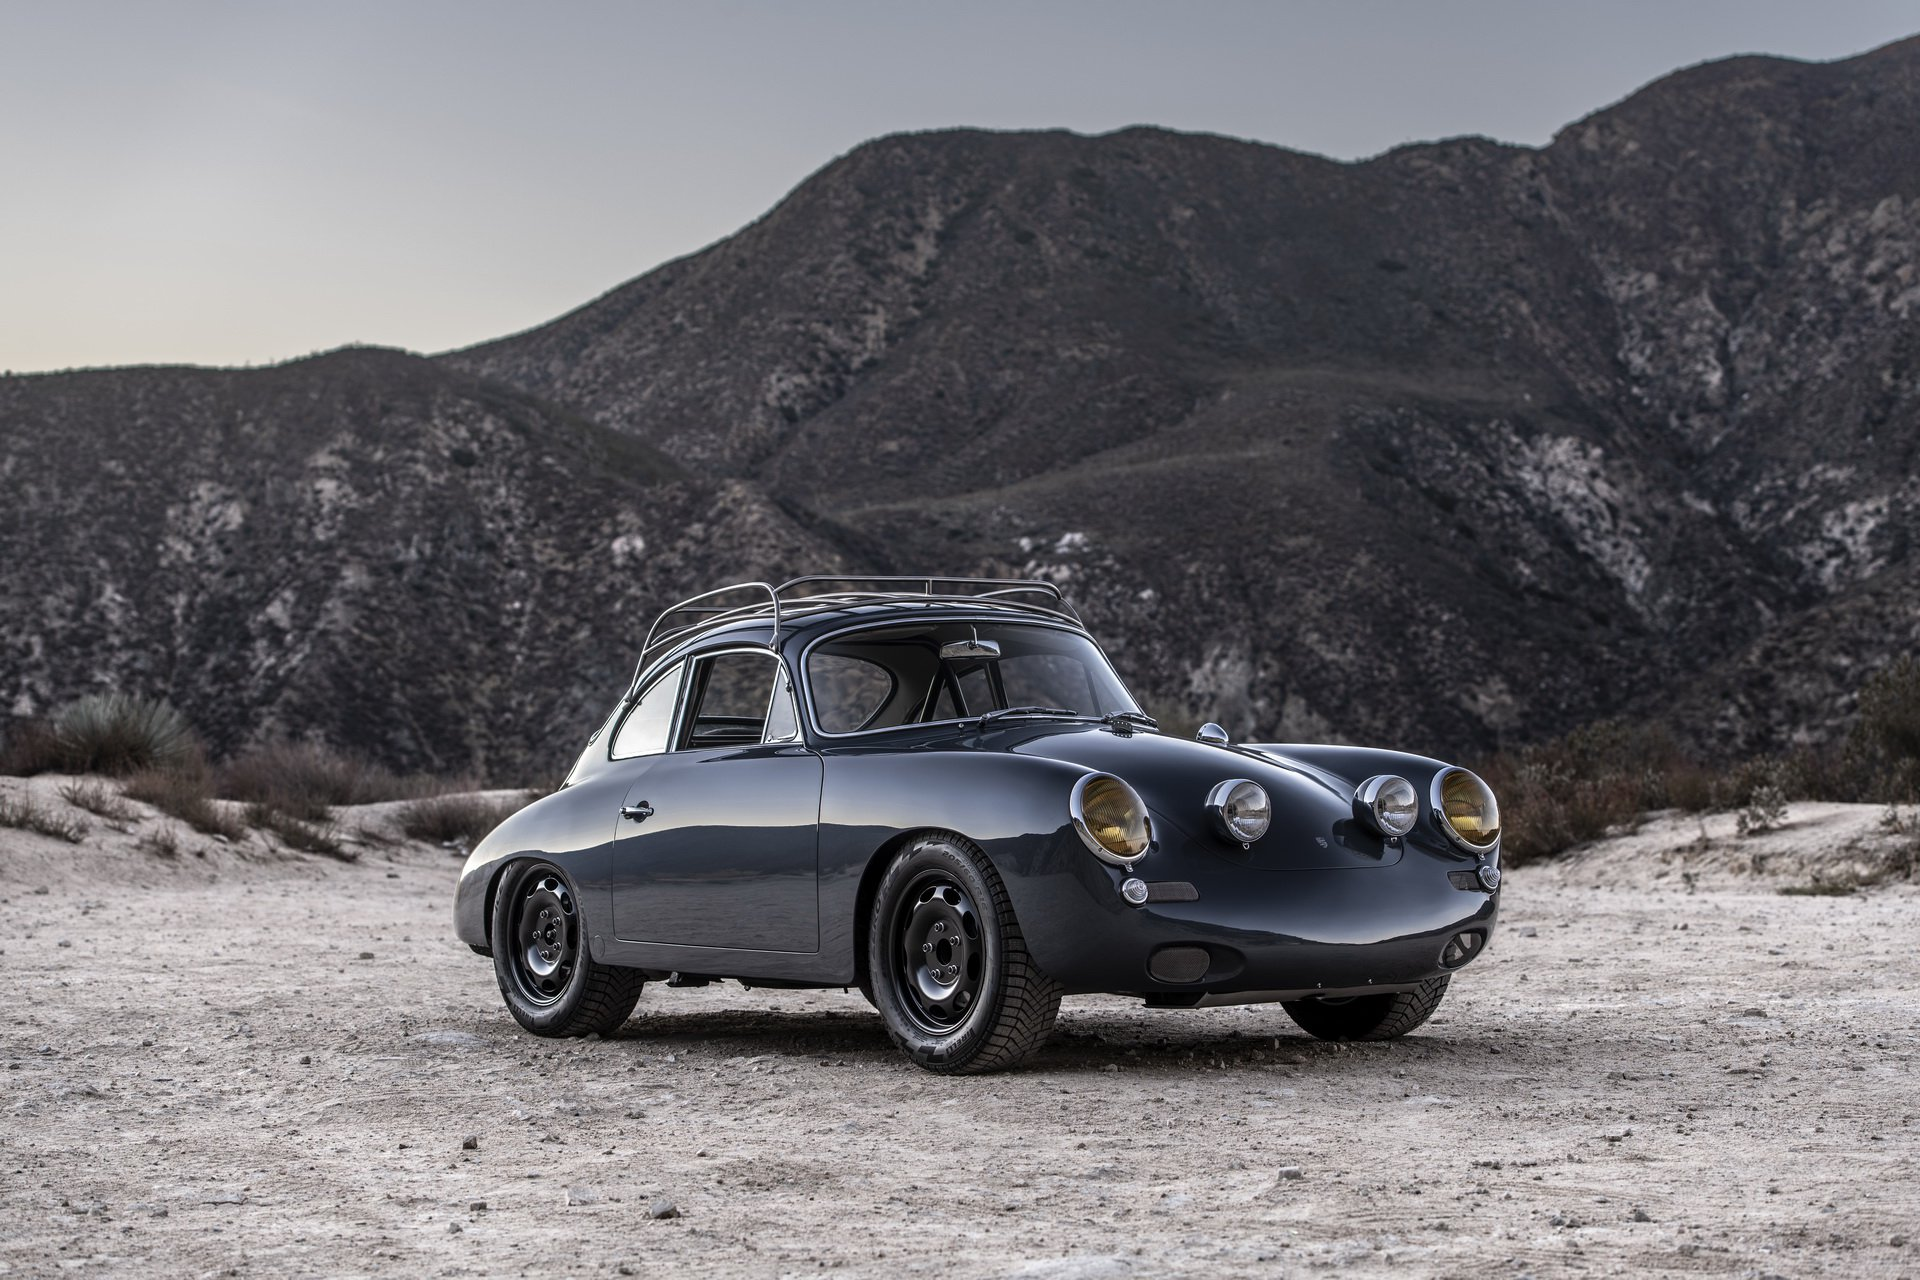 AWD Porsche 356 Coupe by Emory Motorsports (5)